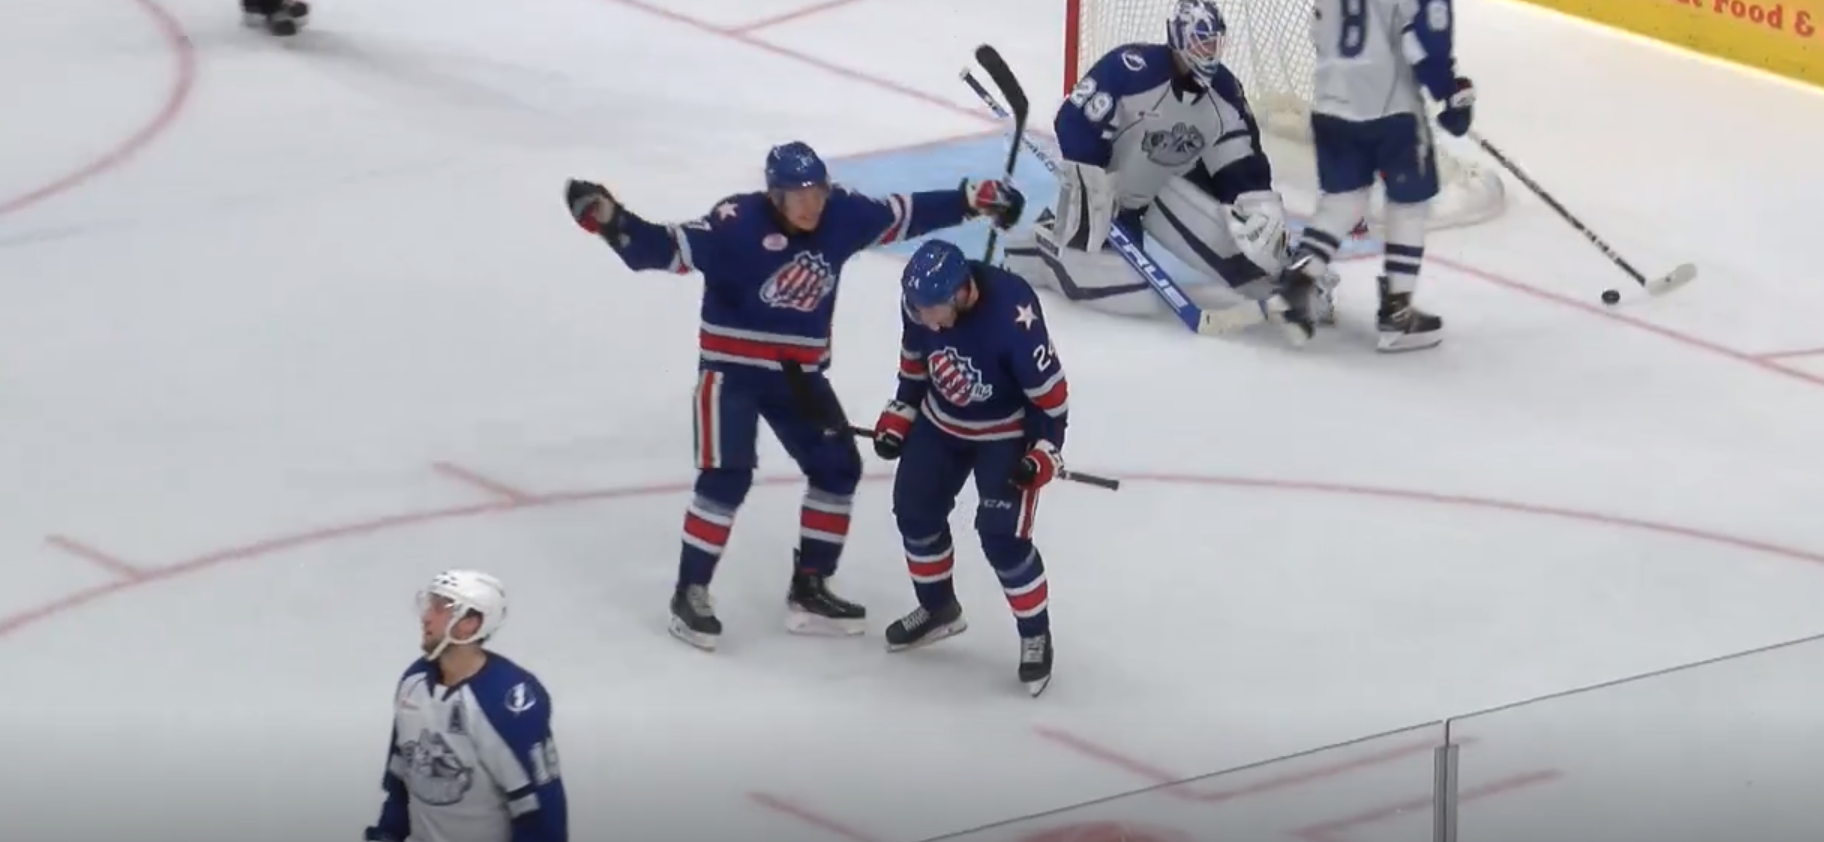 Recap: Pilut Overtime Goal Leads Amerks to a 7-6 Win